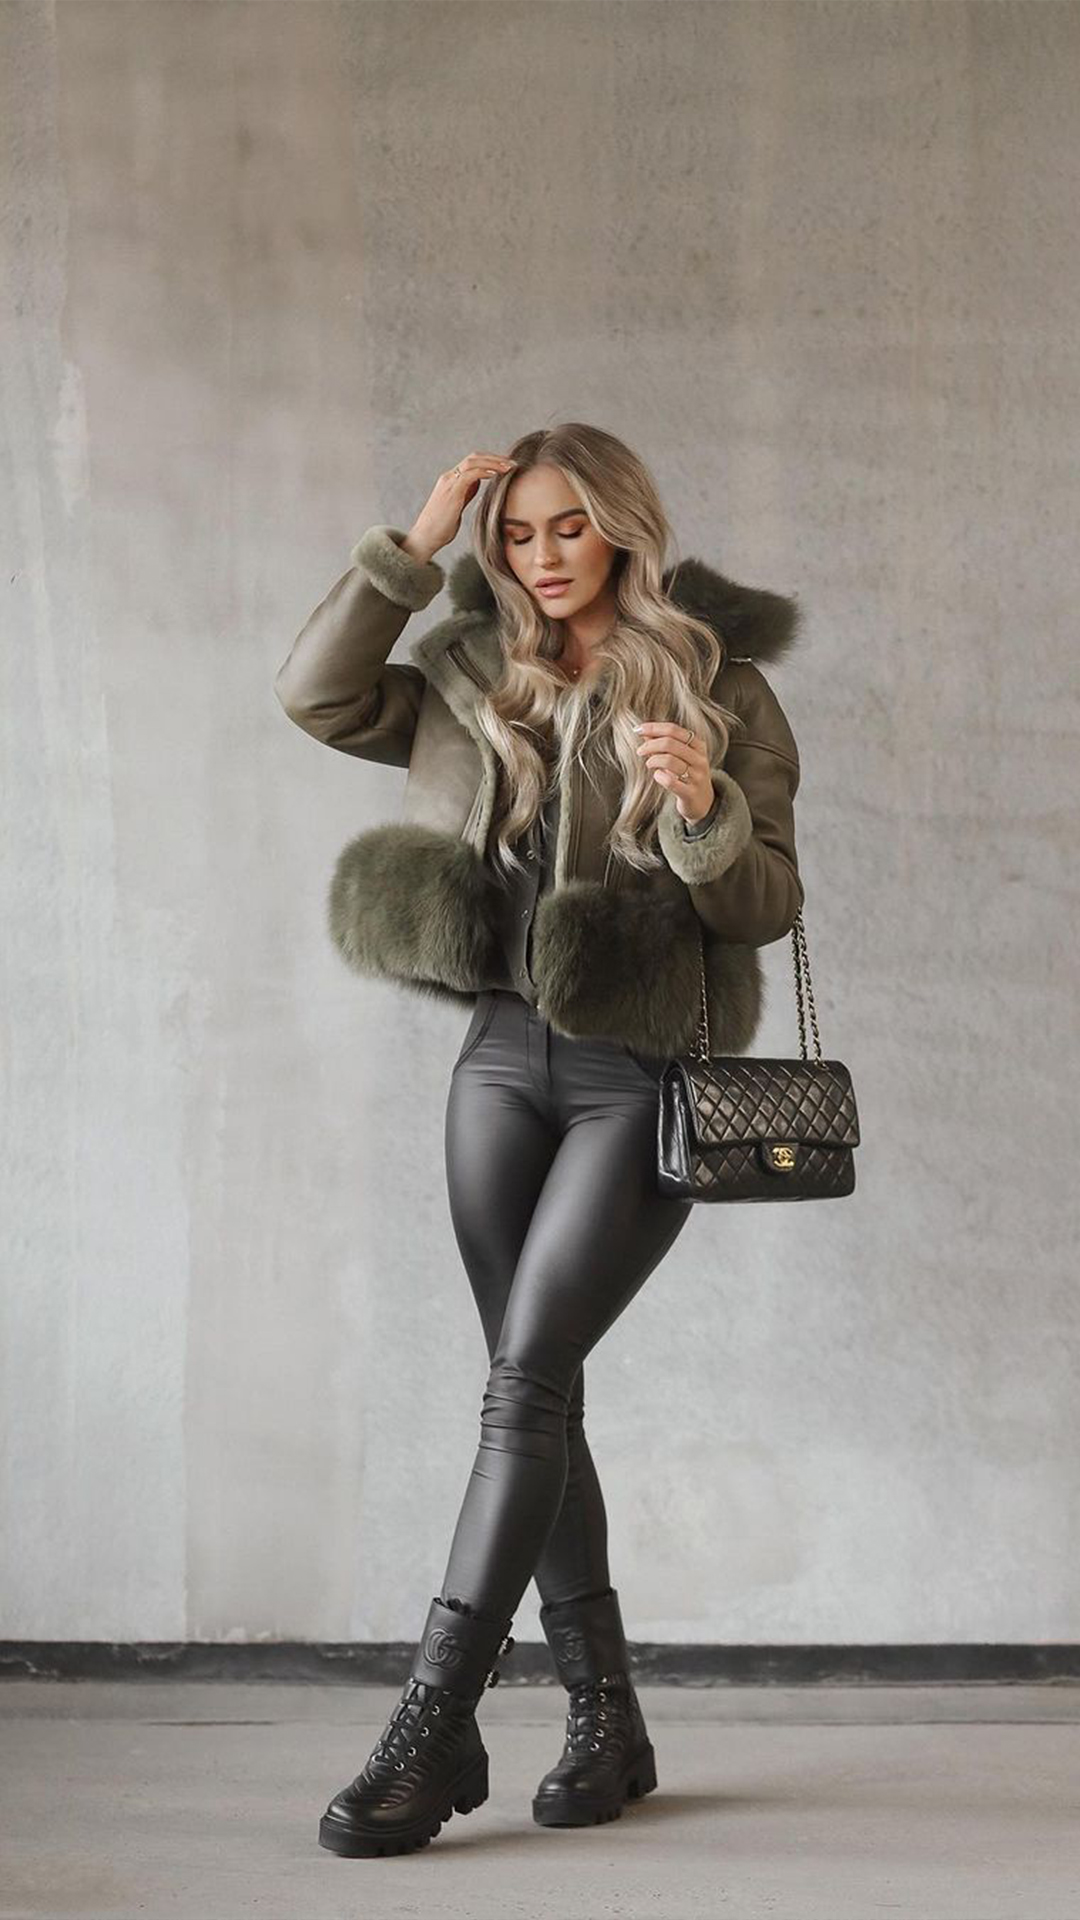 Sexy Model Anna Nystrom Wallpapers Download